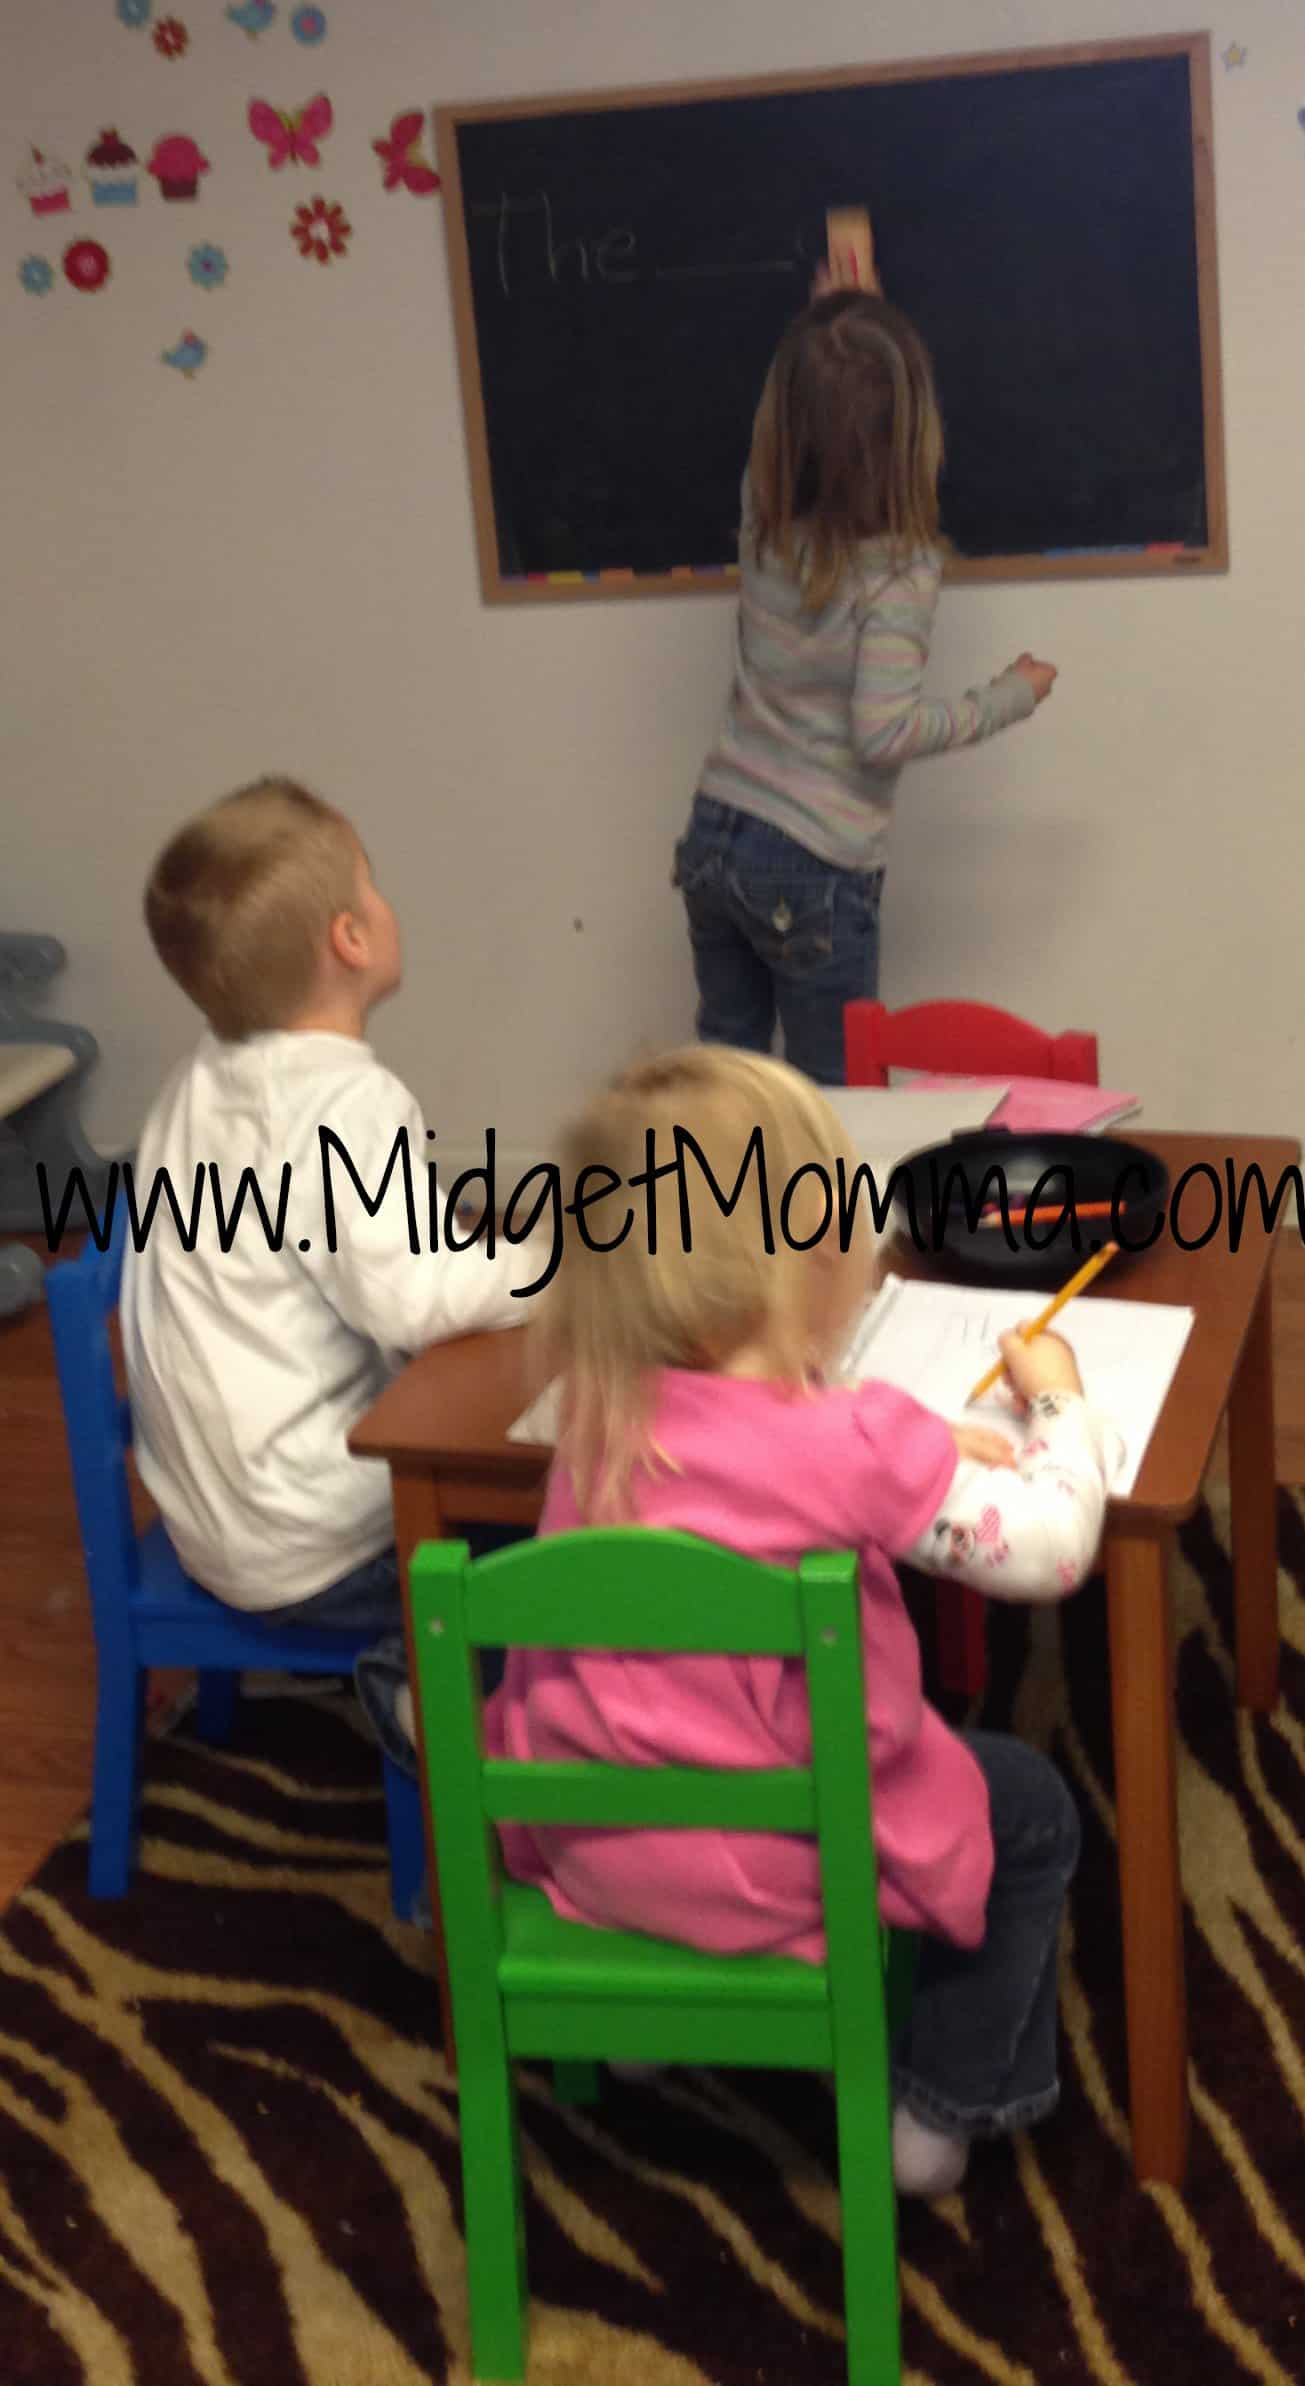 Playroom Furniture that is Fun, Stylish, & Great for Kids From Toys R Us